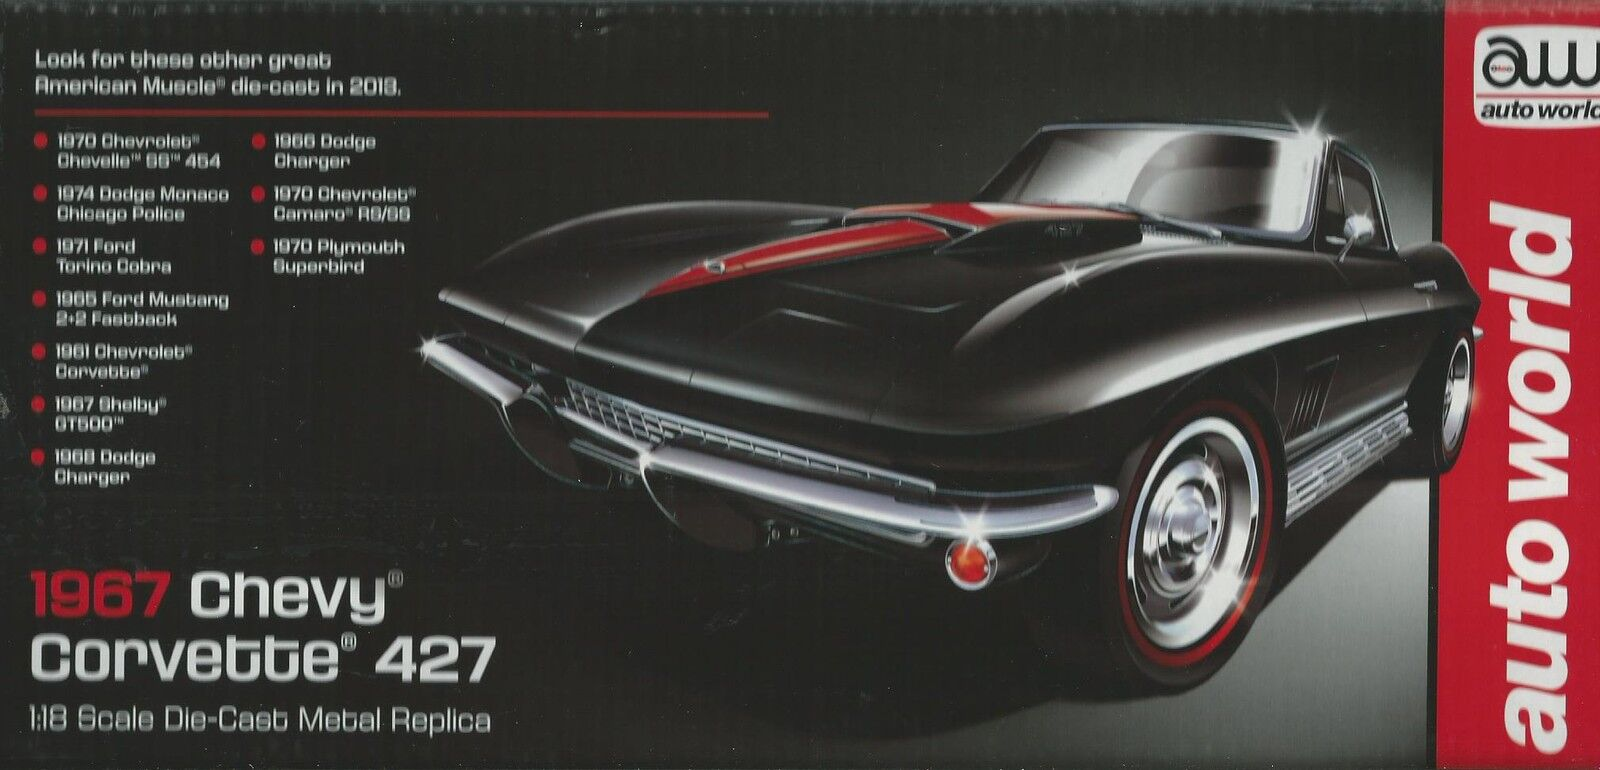 ERTL AMERICAN MUSCLE AUTO WORLD 1 18 CHEVY CORVETTE 427 DEL 1967  ART 1004